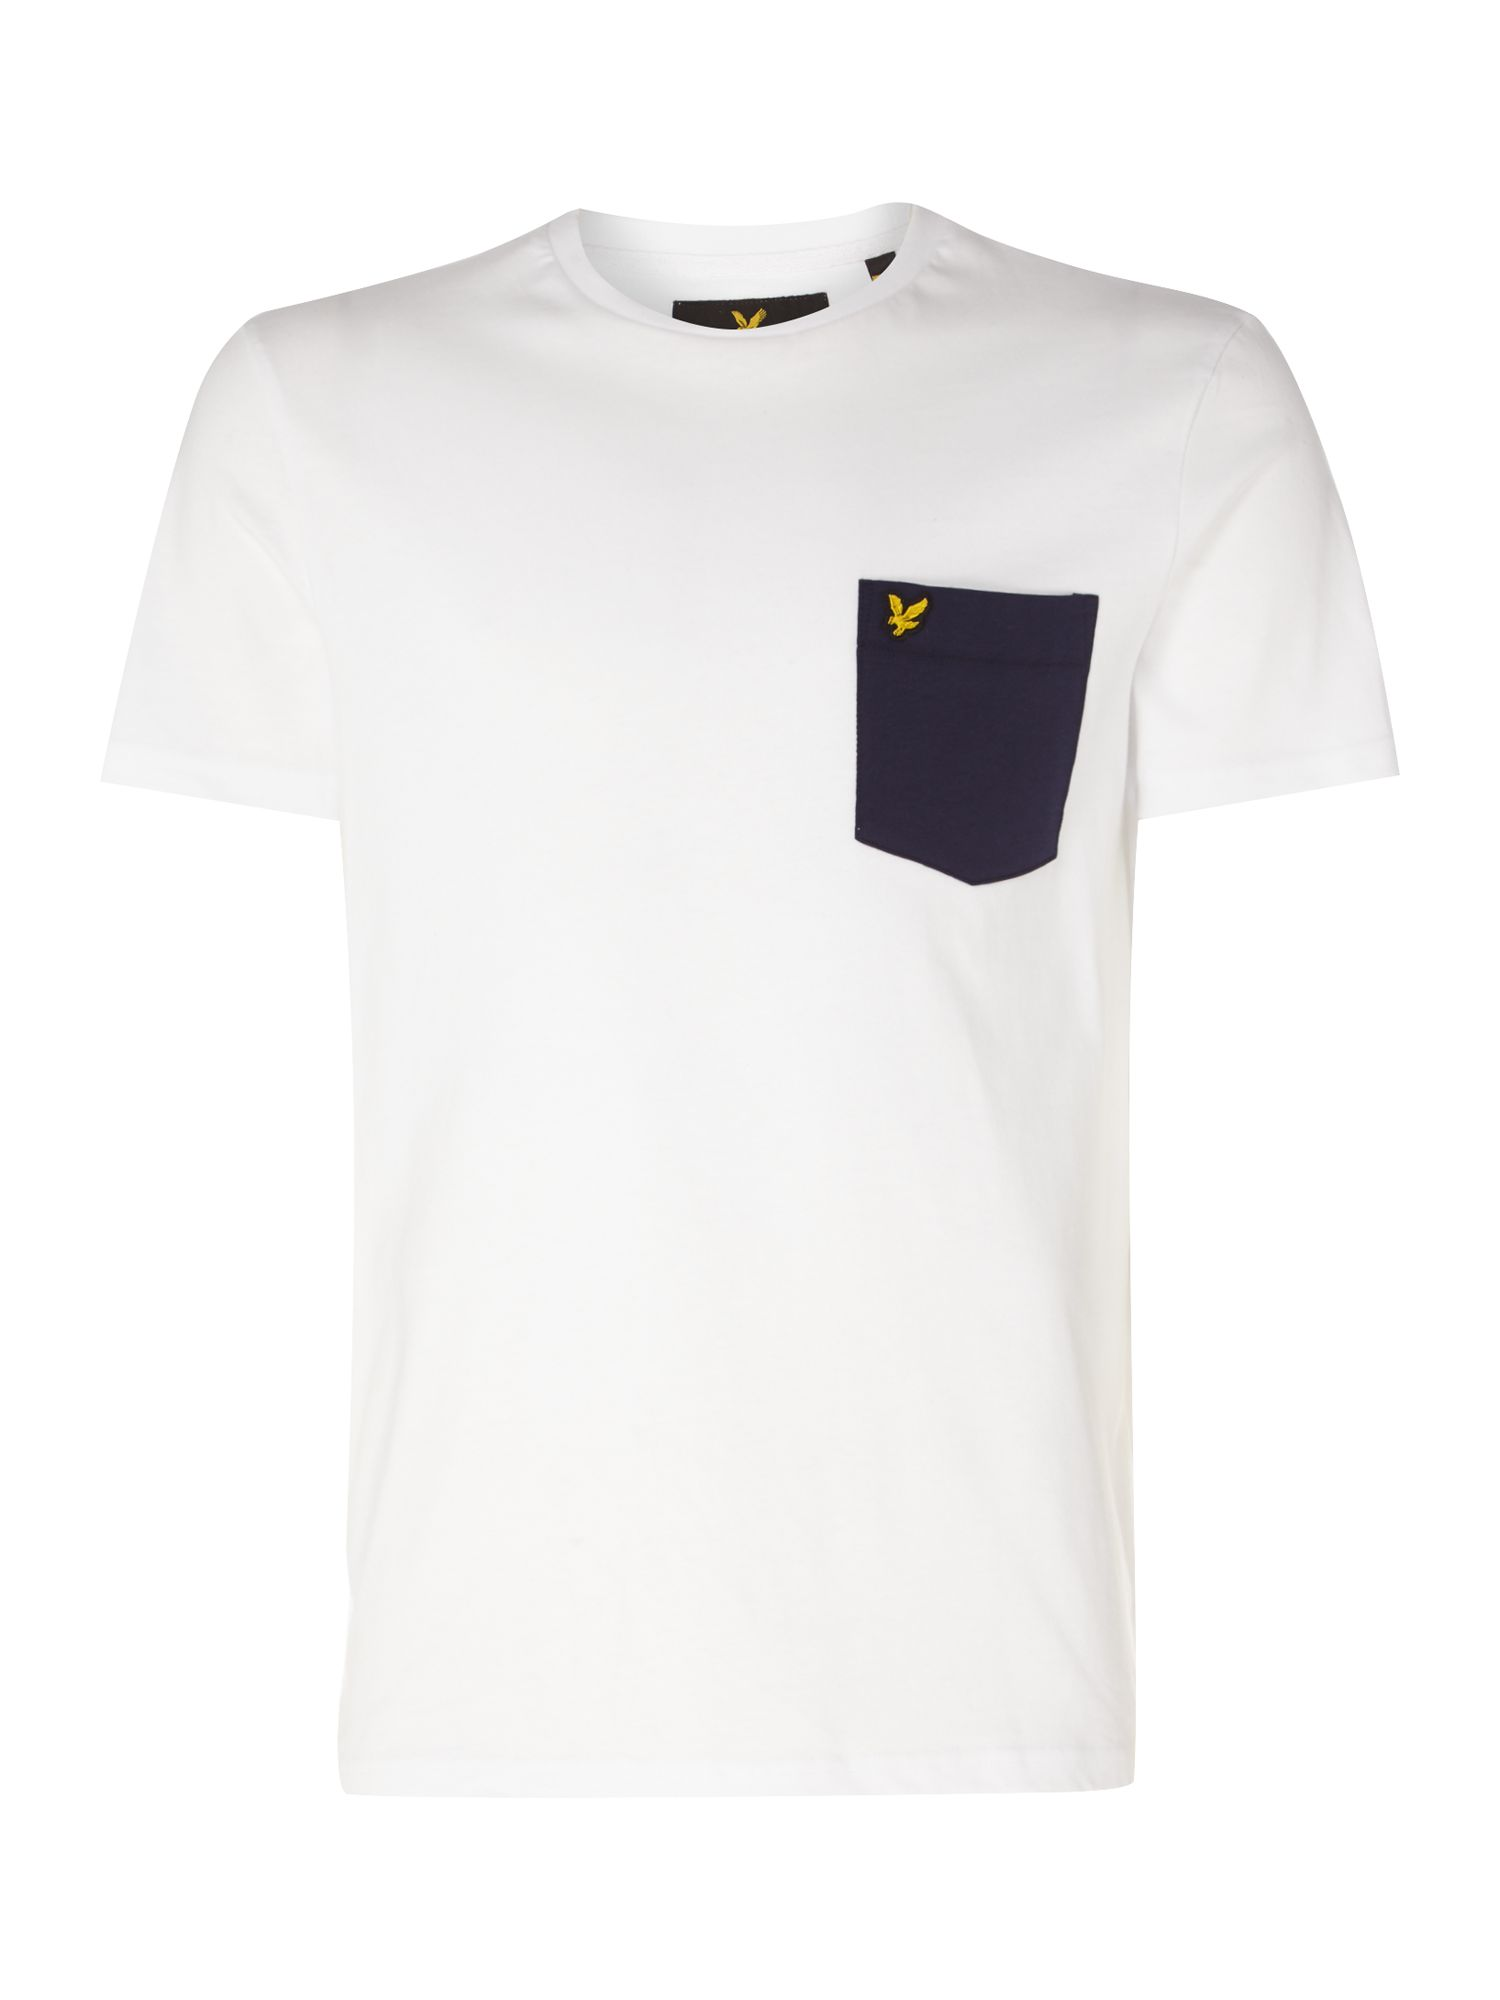 Men's Lyle and Scott Contrast pocket t-tshirt, White